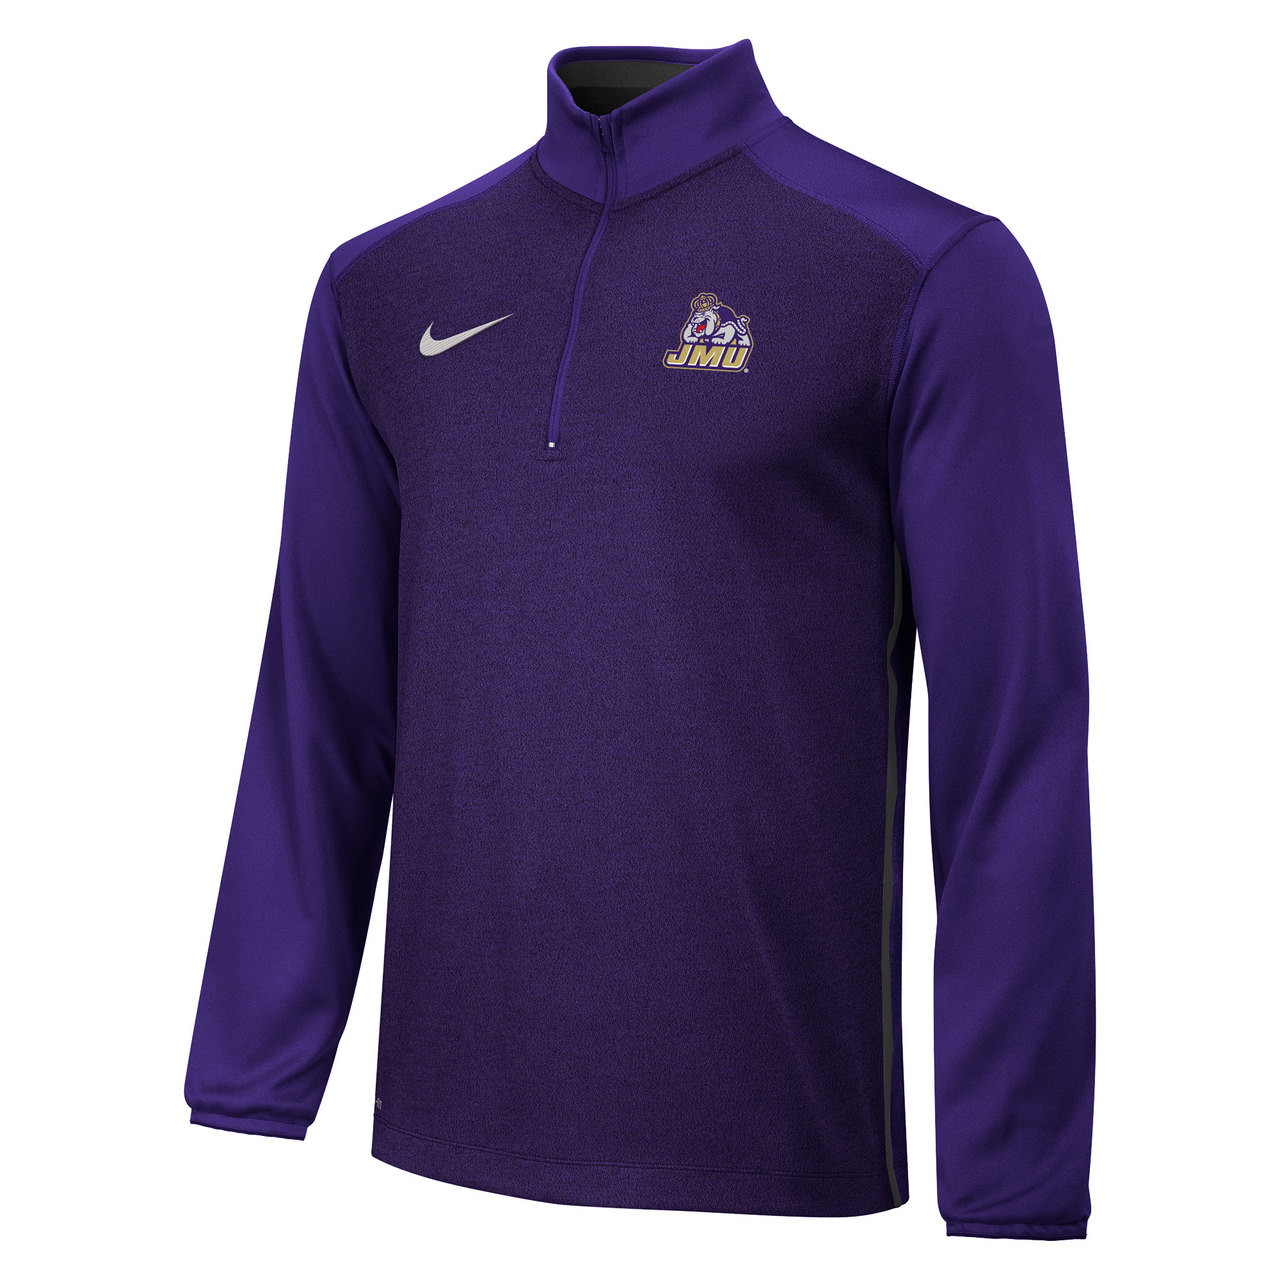 c9efd4c9c2d3 Nike Coaches 1 4 Zip Pullover - University Outpost